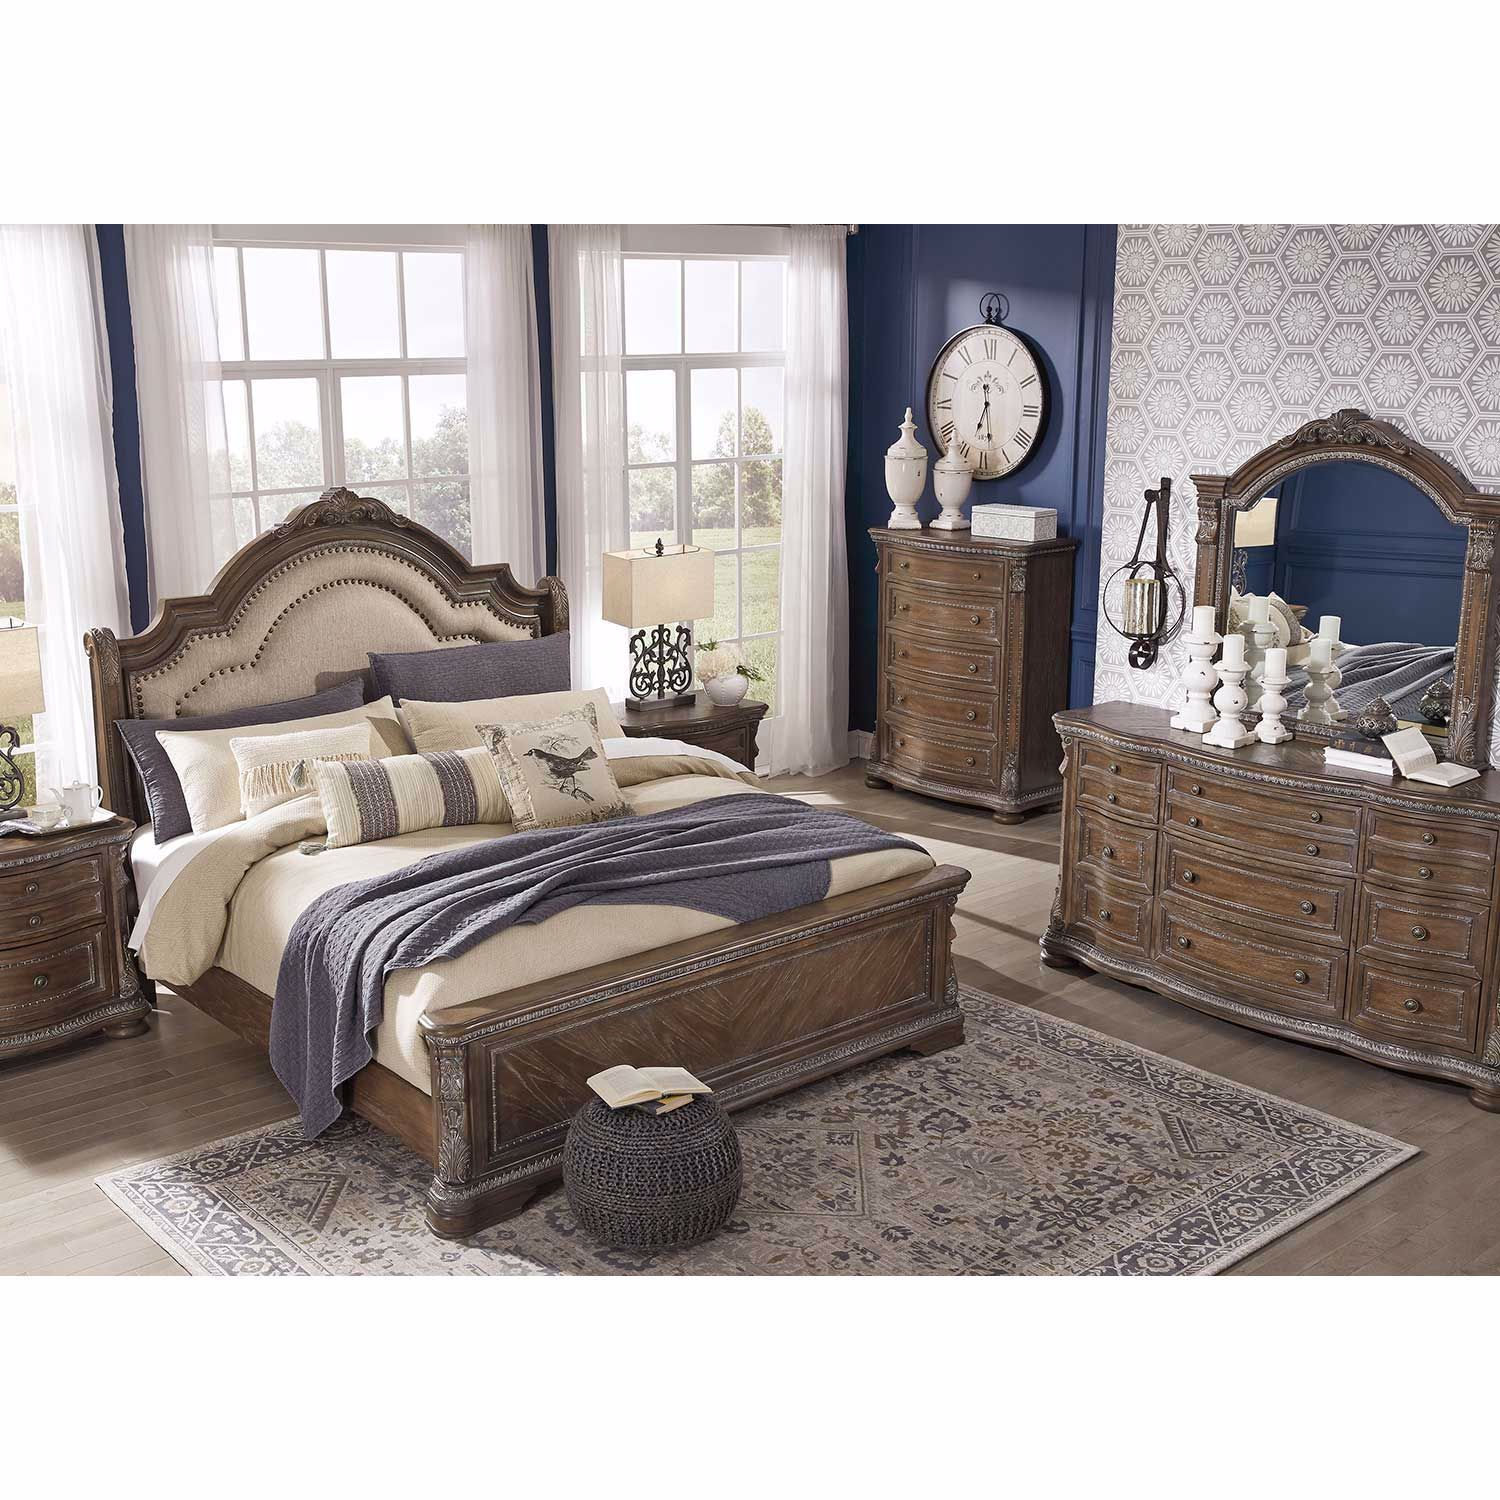 Picture of Charmond Upholstered Queen Bed